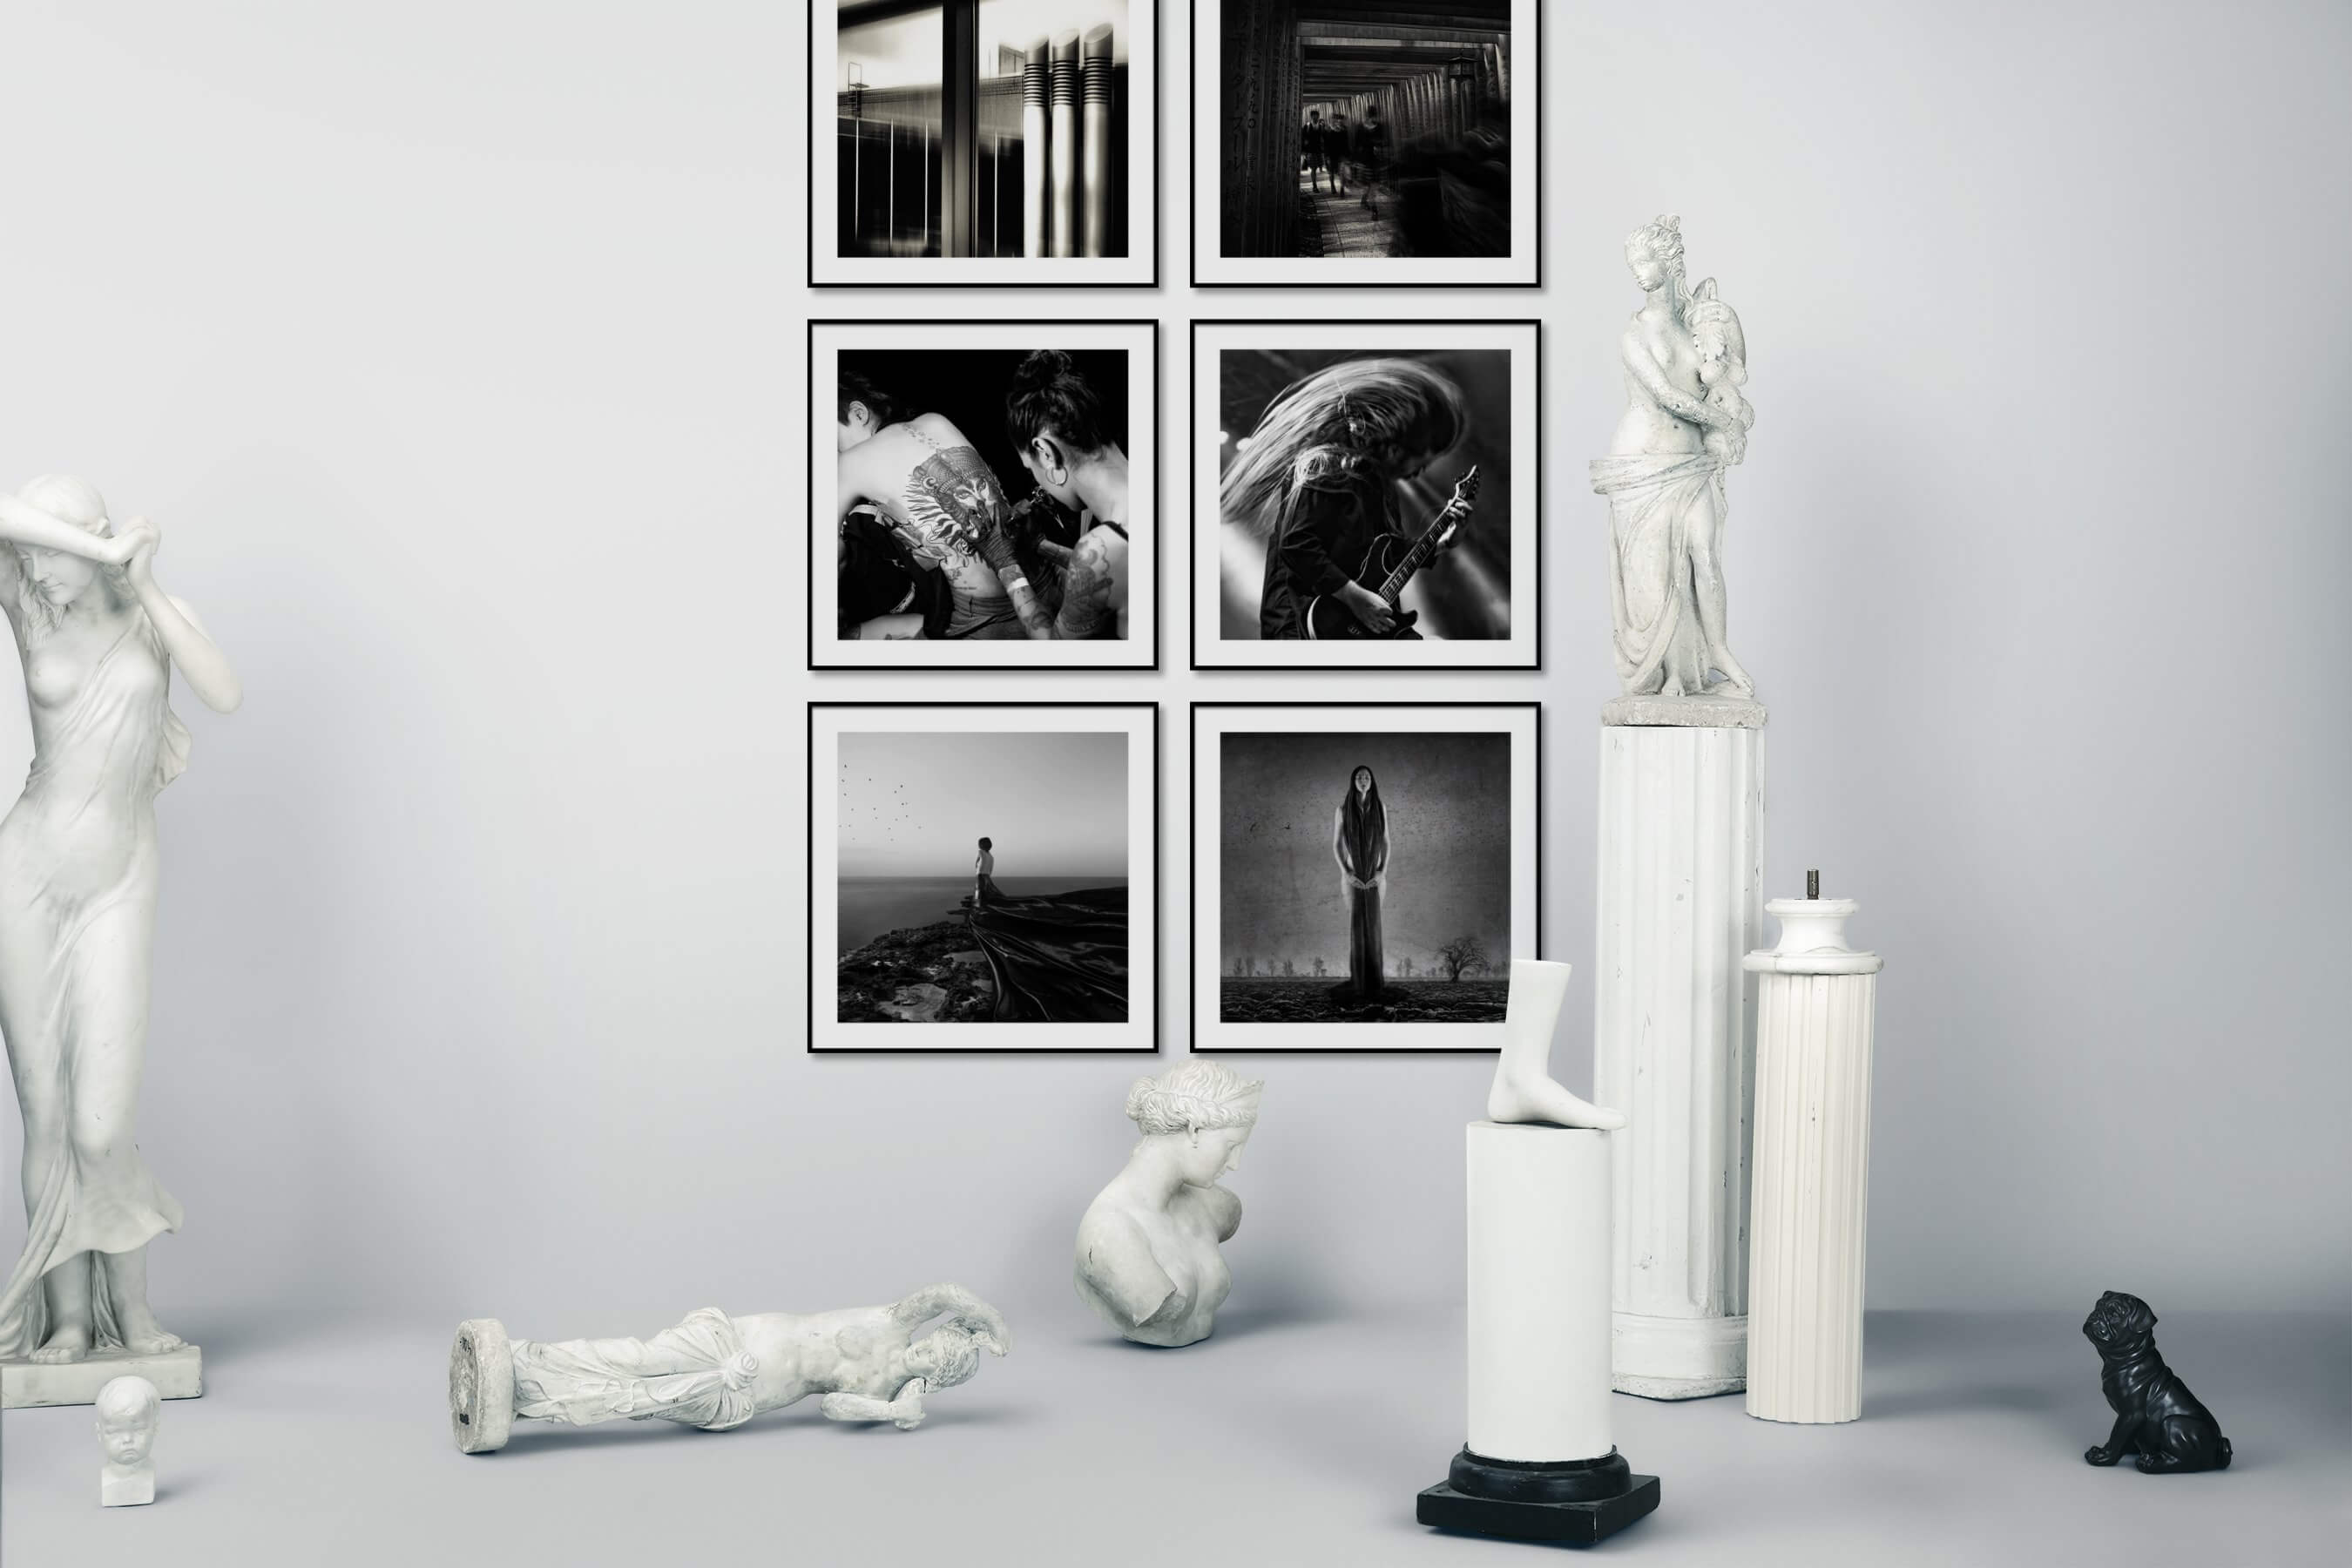 Gallery wall idea with six framed pictures arranged on a wall depicting Black & White, For the Moderate, City Life, Fashion & Beauty, Beach & Water, and Artsy